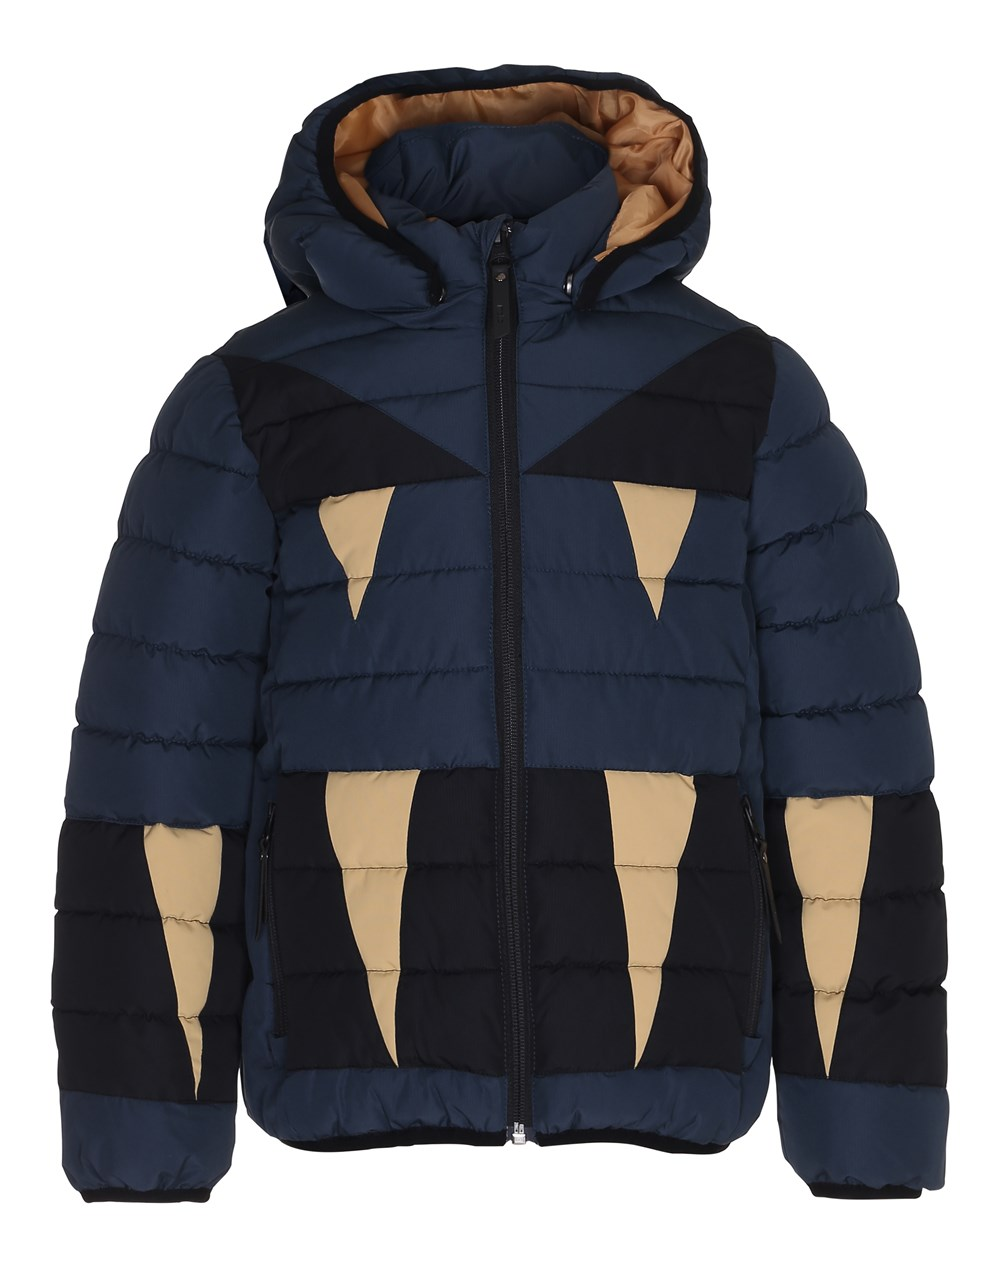 Hackett - Midnight Navy - Blue winter jacekt with reflectors